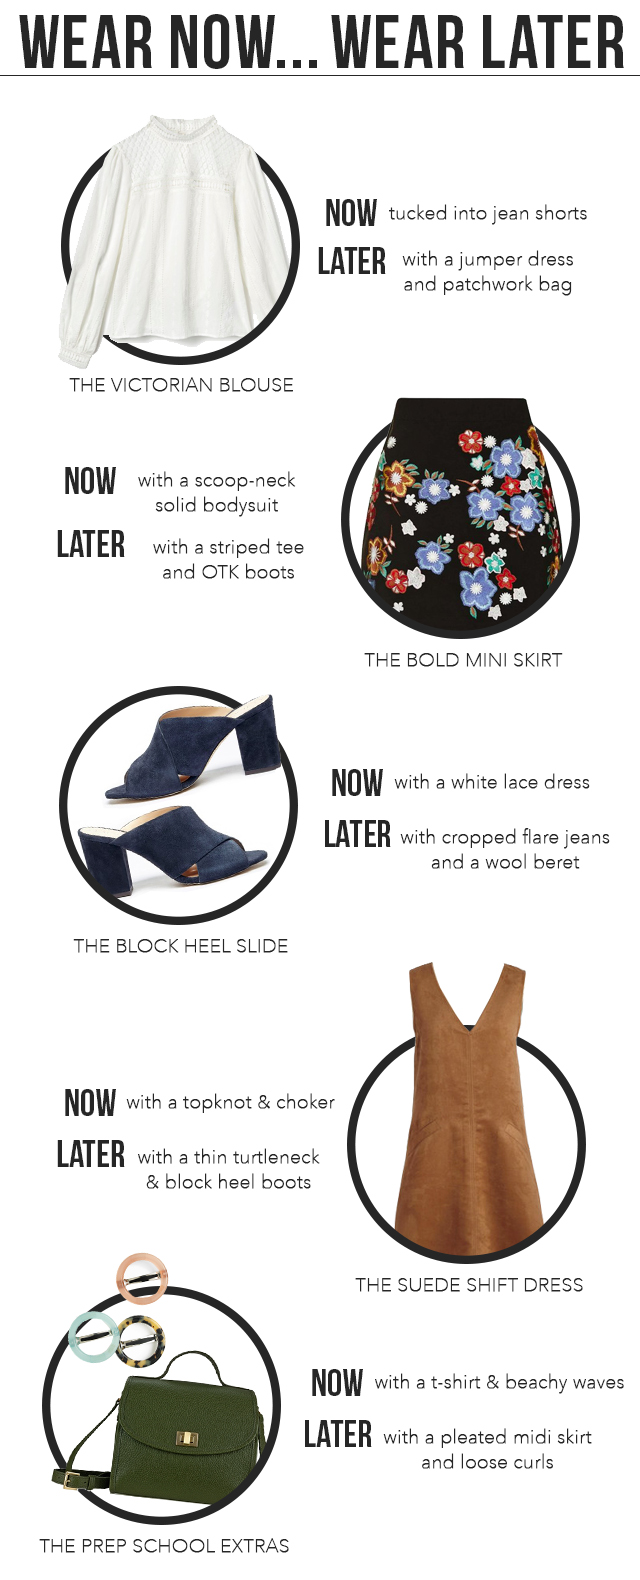 Wear Now Wear Later - transitional trends for Summer to Fall